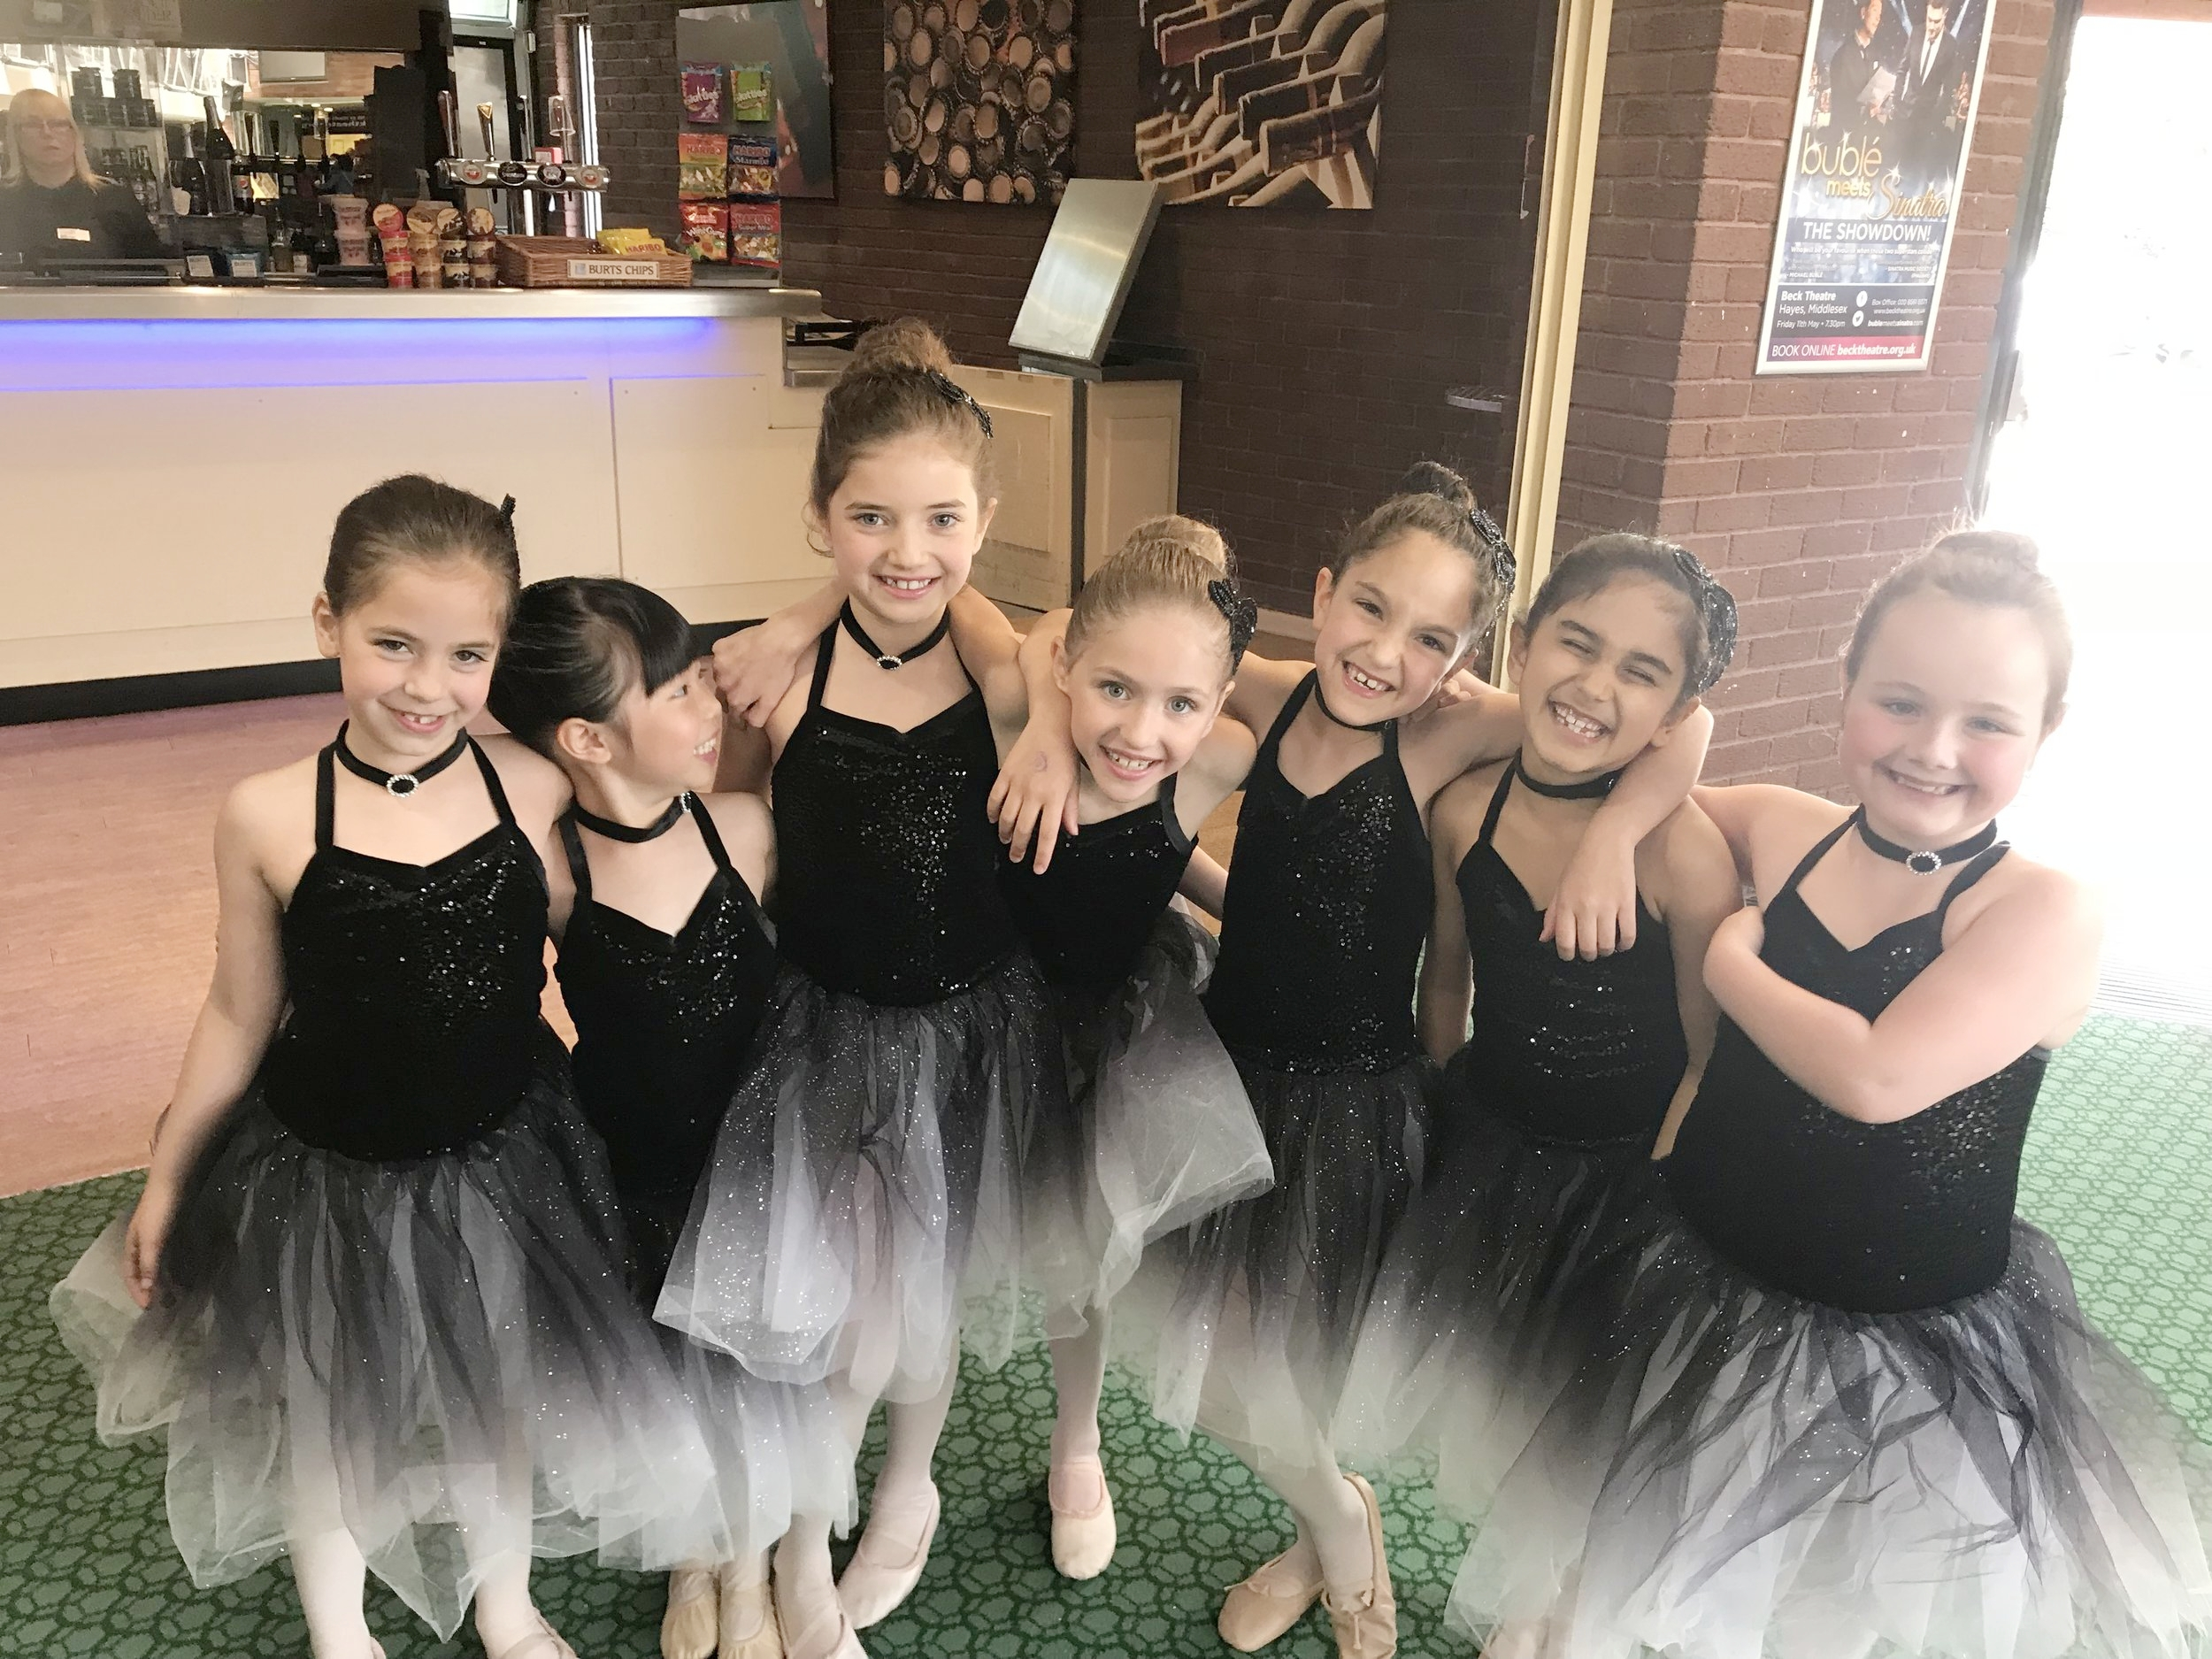 Ballet with Maida Vale Ballet School - This classprepares our students for Grate 1 exam at theRoyal Academy of Dance.OFFERED: Saturday 10:15 - 11:00.SIGN UP:You can trial the class for £12.90 click here.INSTRUCTOR: Alex